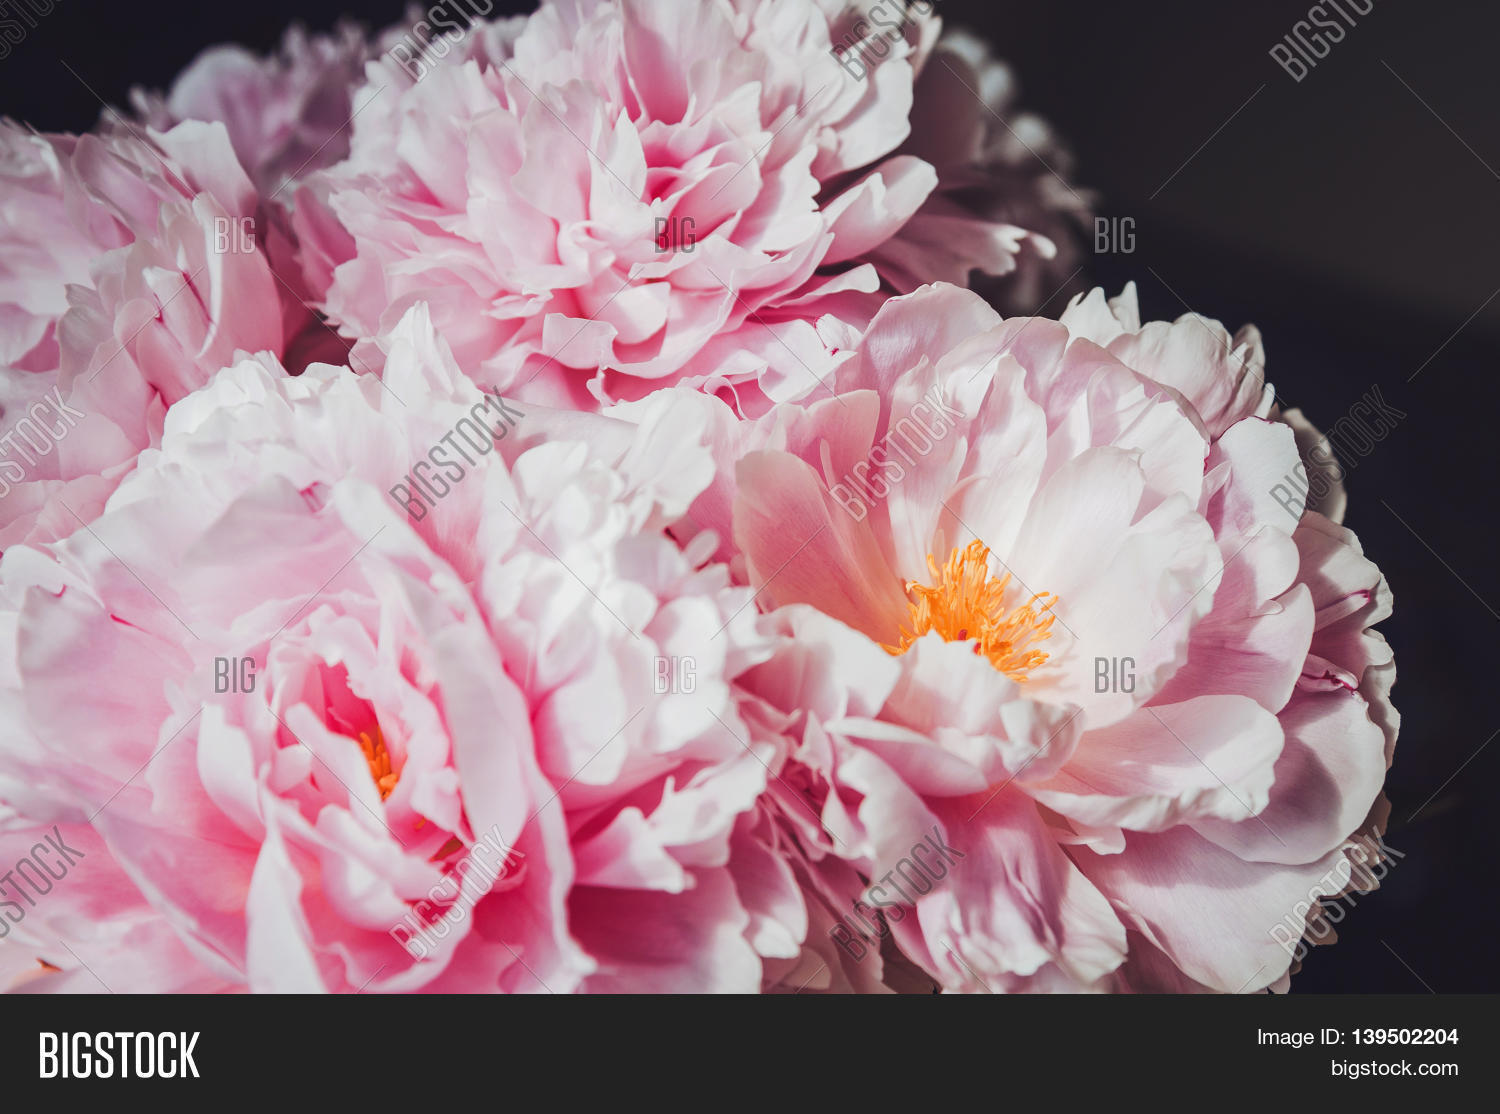 Floral Wallpaper Image Photo Free Trial Bigstock